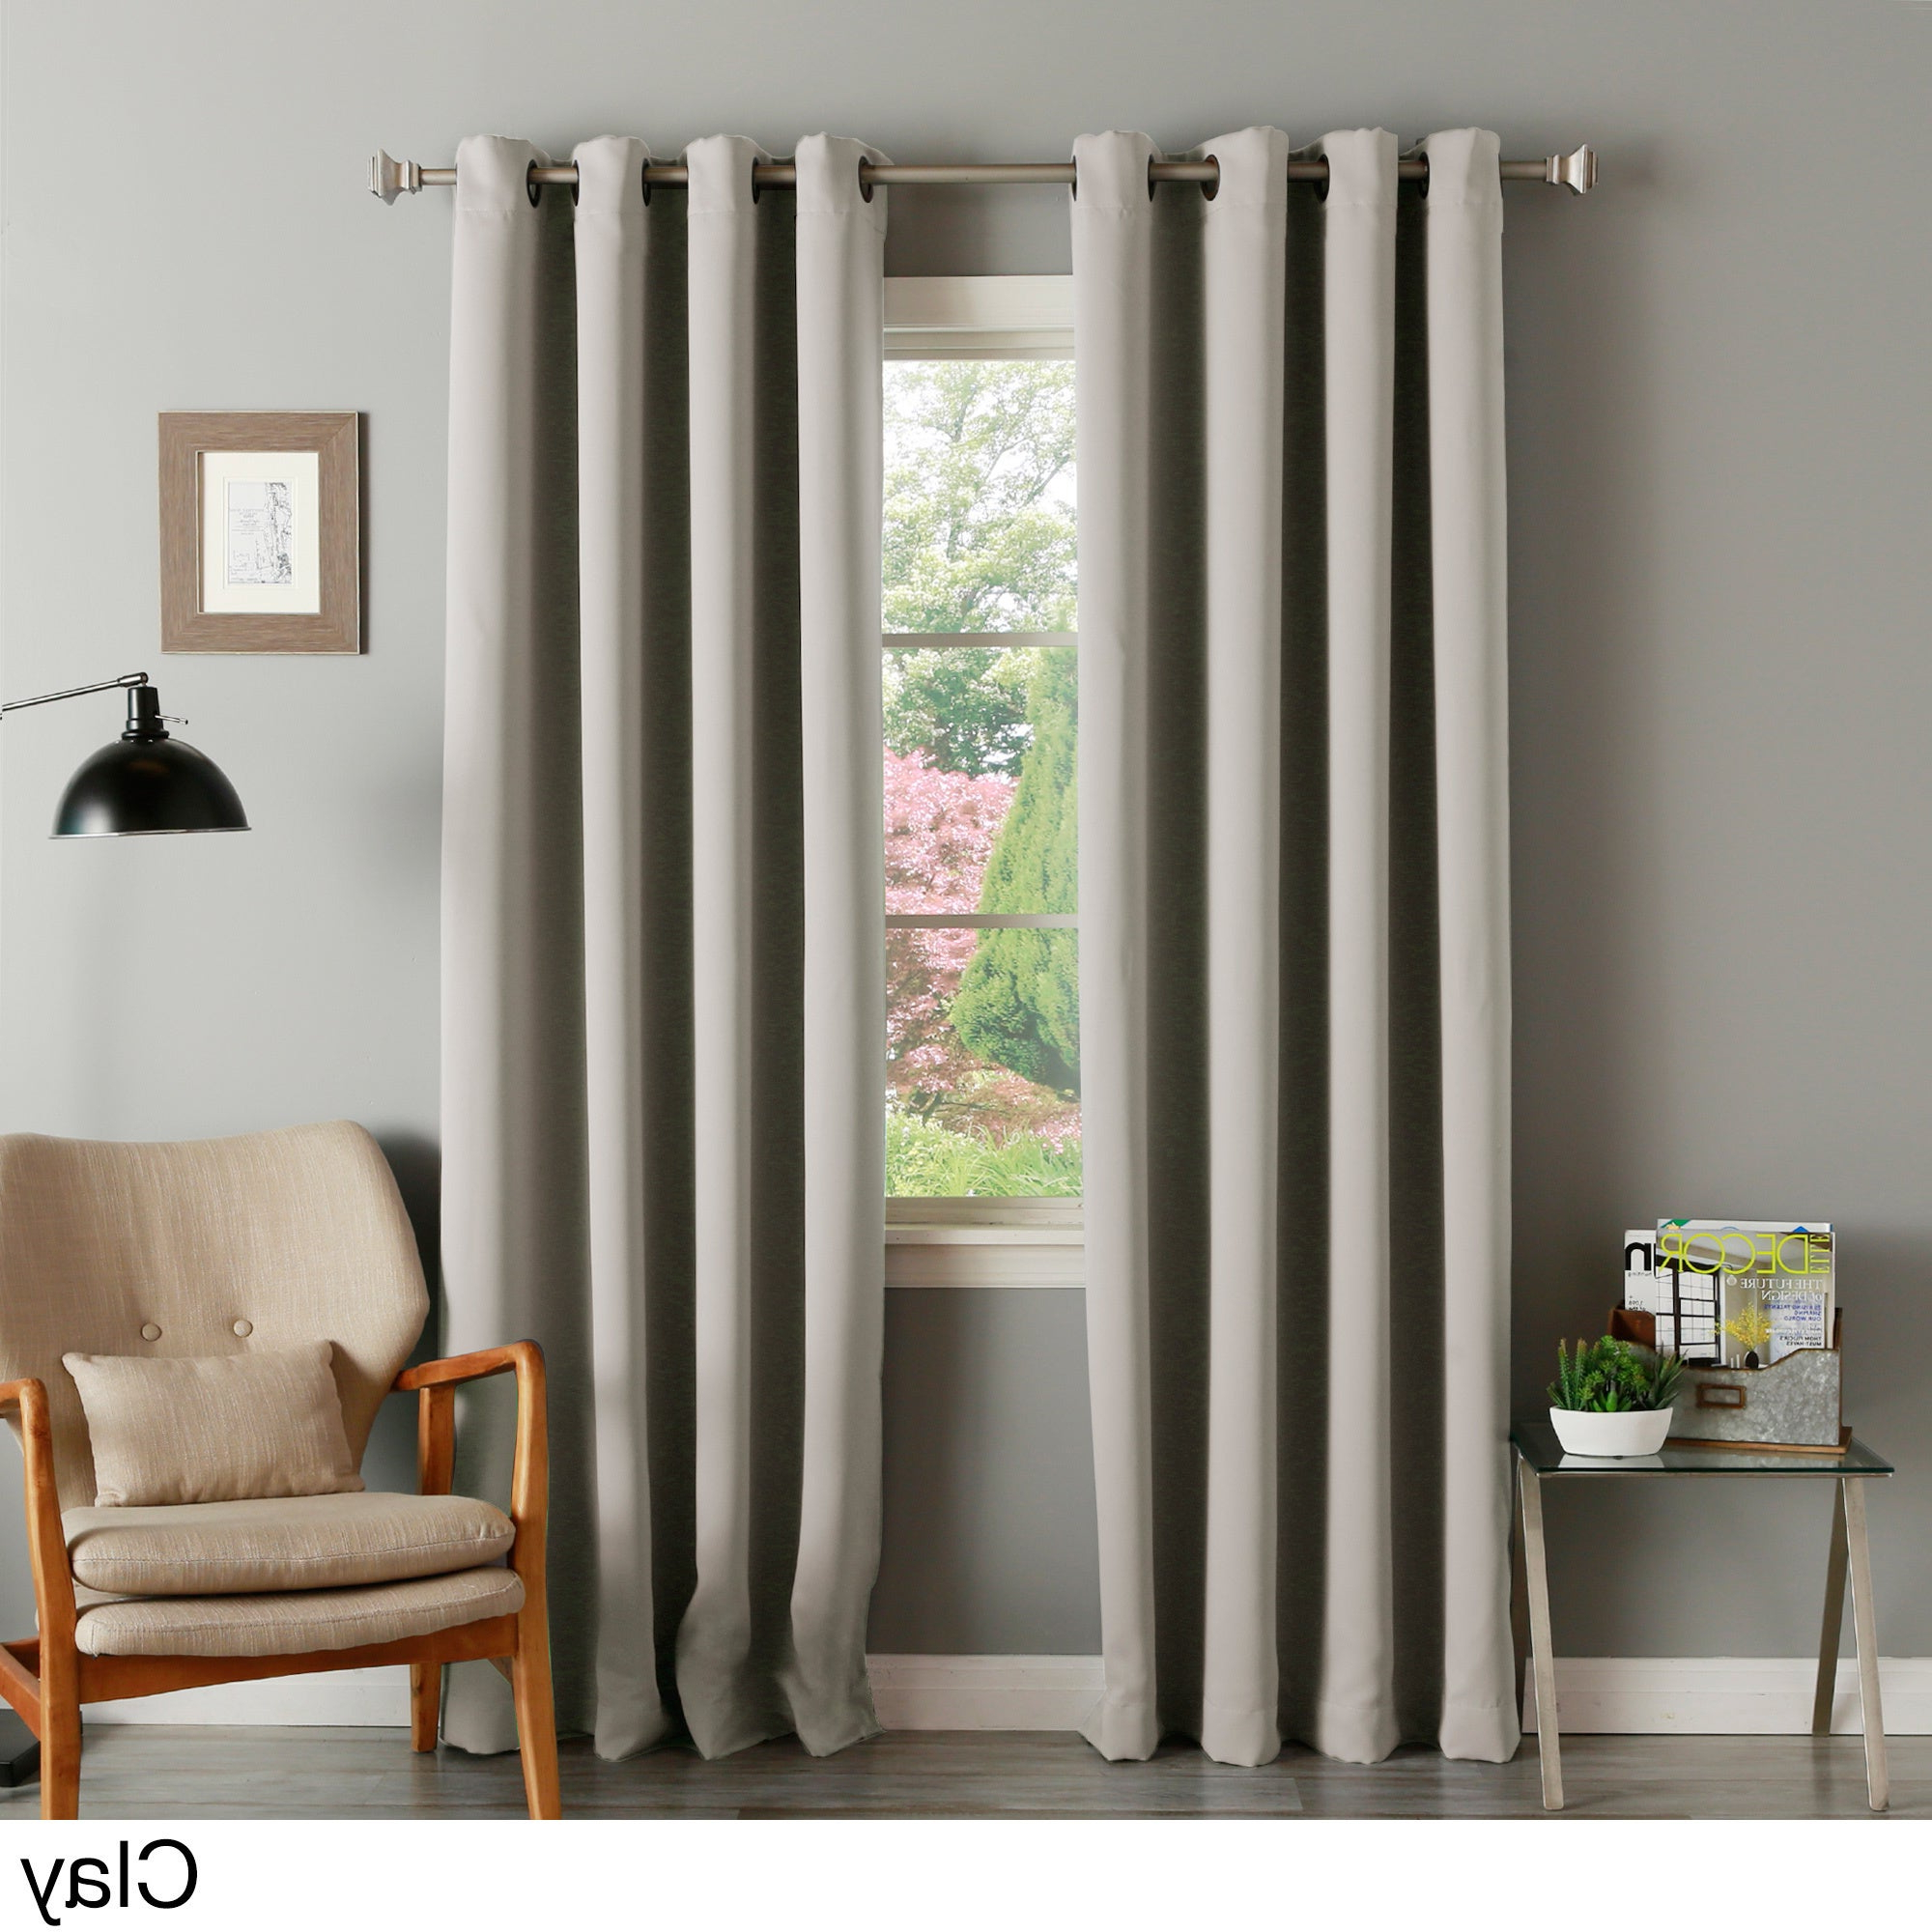 Preferred Aurora Home Thermal Insulated Blackout Grommet Top Curtain Panel Pair Within Insulated Cotton Curtain Panel Pairs (View 11 of 20)